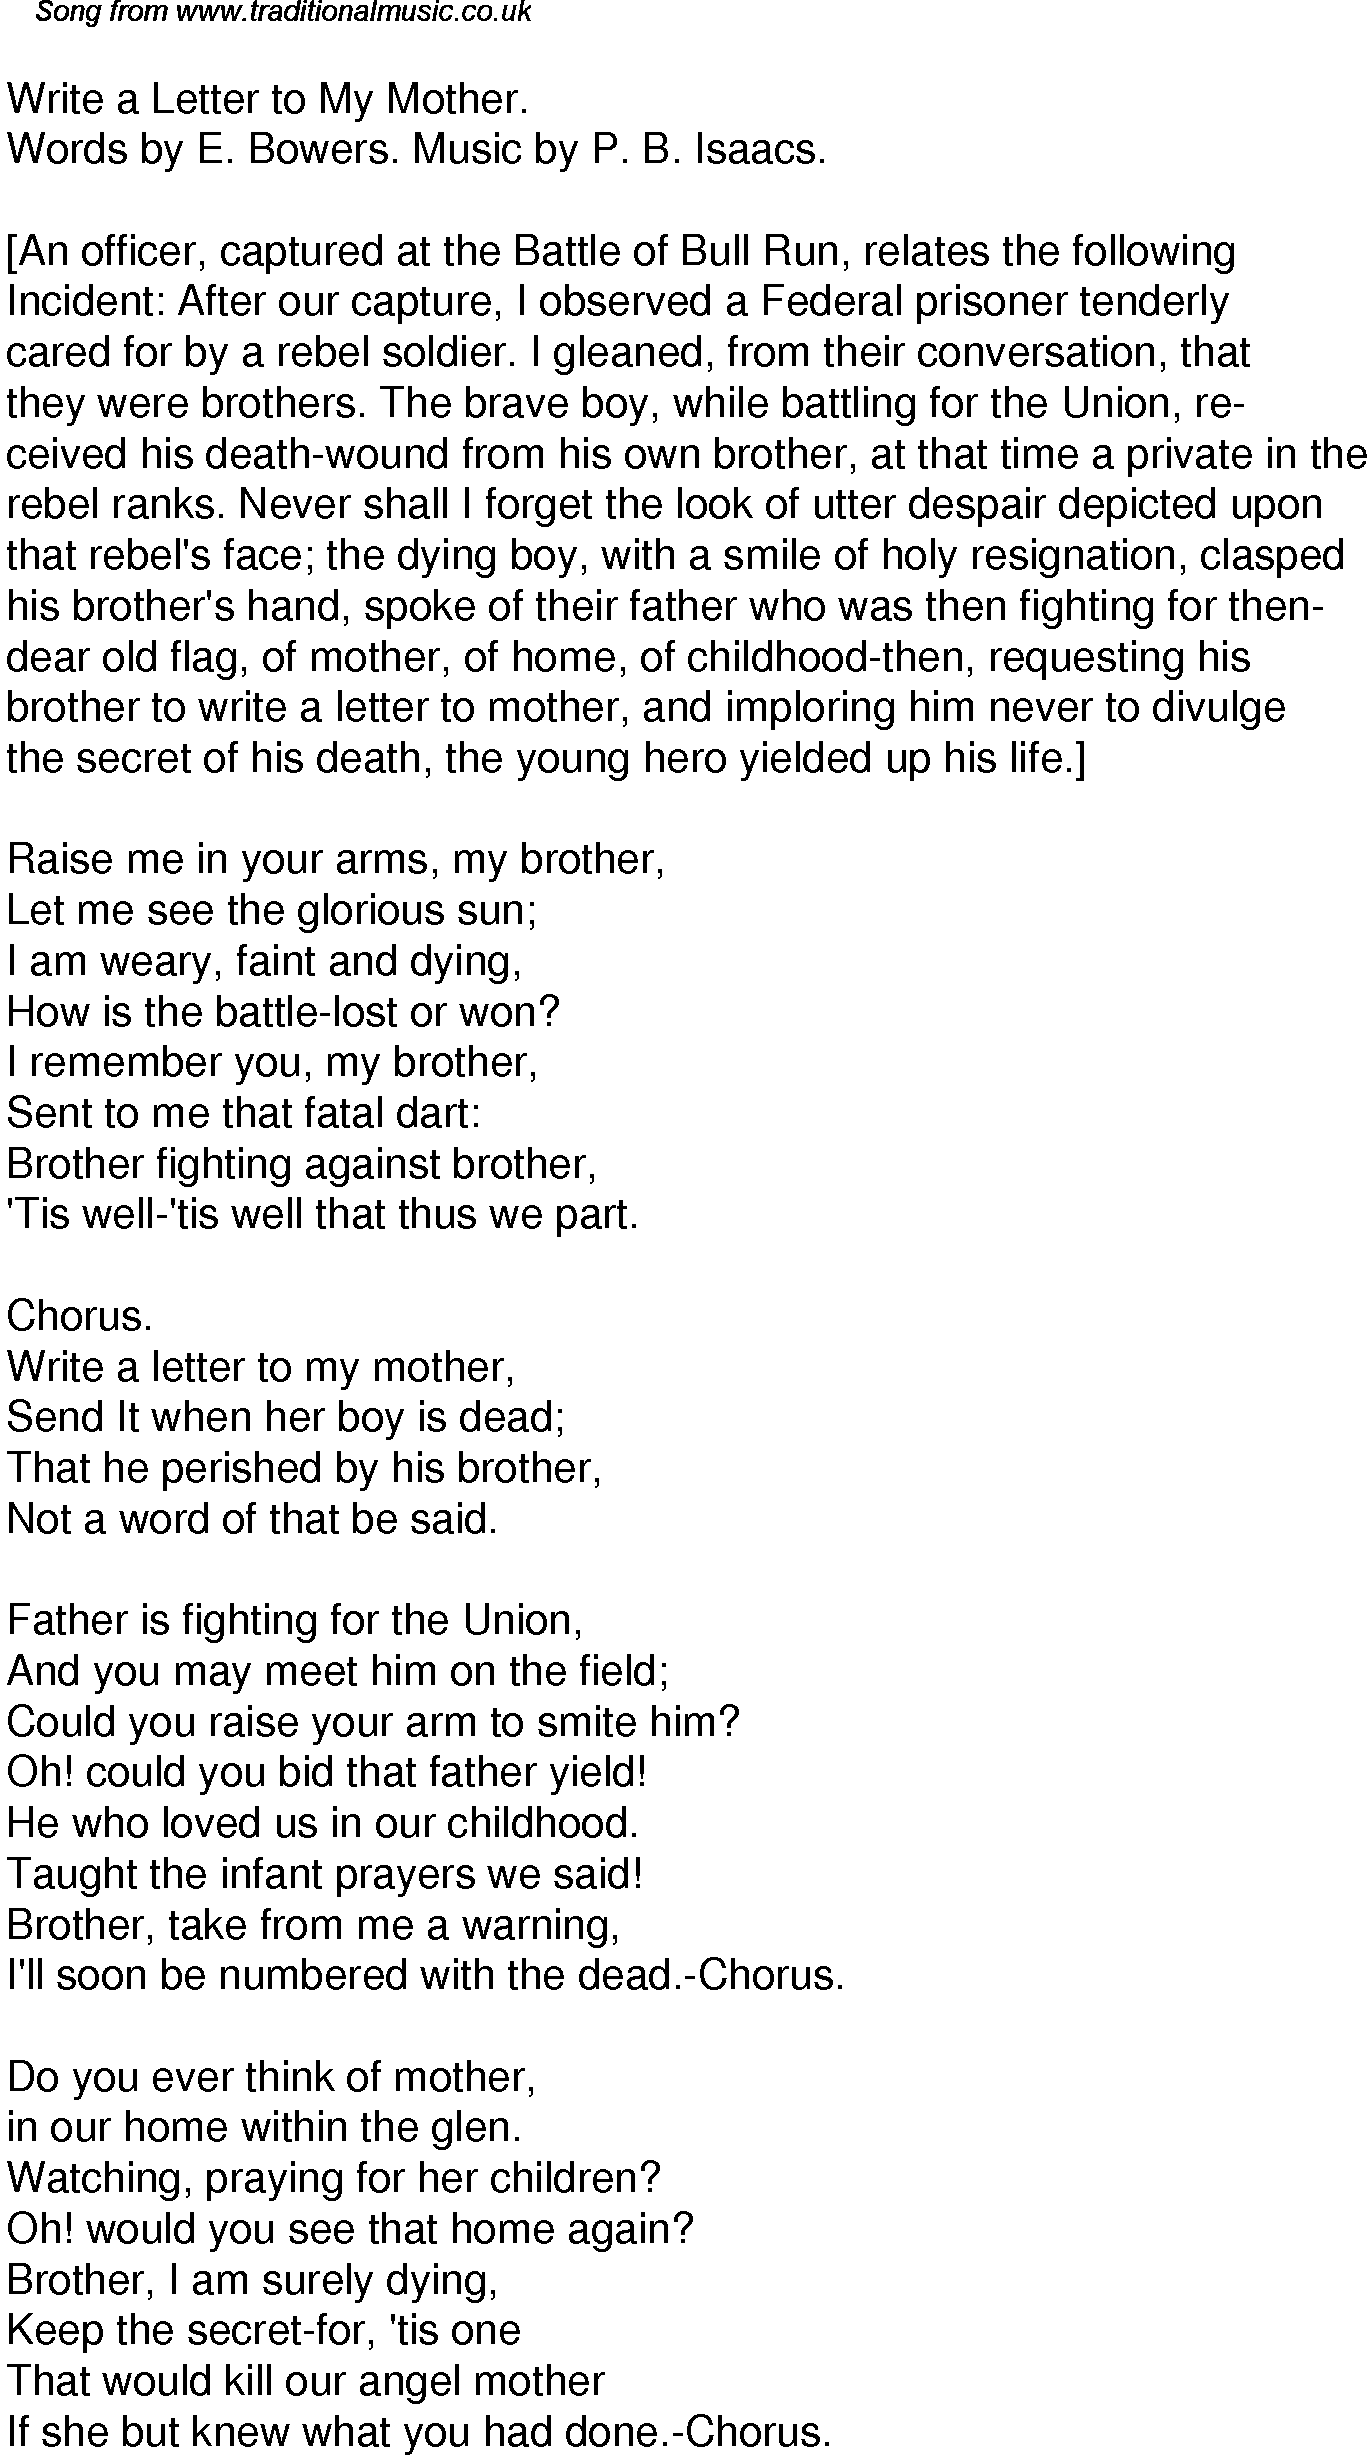 Old Time Song Lyrics For  Write A Letter To My Mother